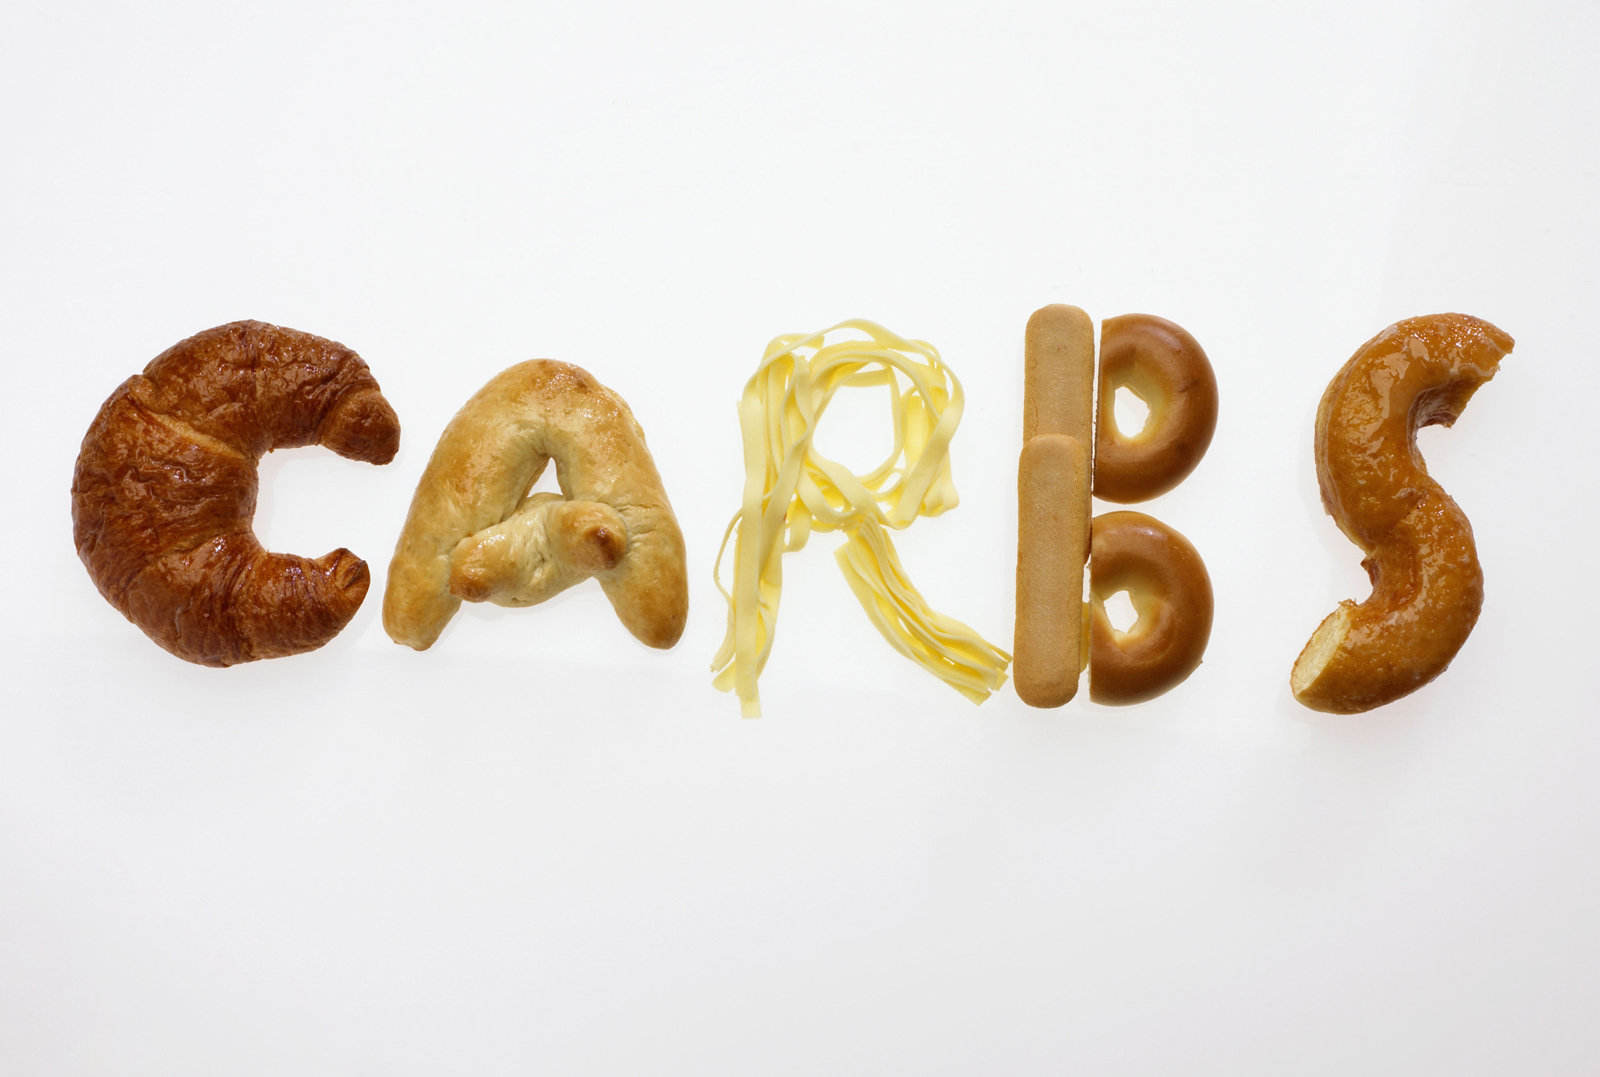 Carbs - Carbohydrates - Glucides